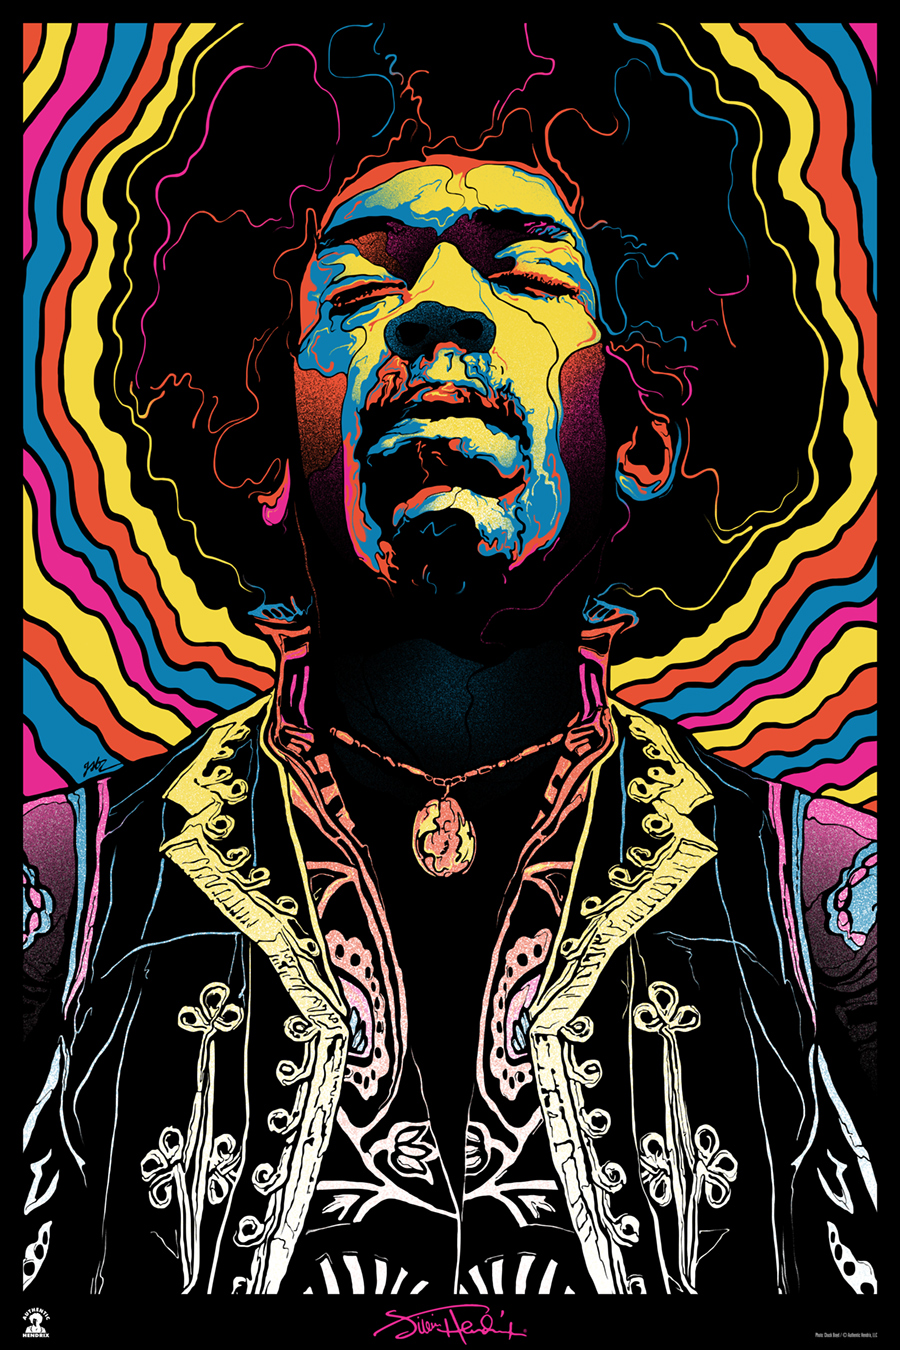 """Jimi Hendrix, Voodoo Child"" by Gabz.  24"" x 36"" Screenprint.  Variant (Ed of 50, $100) : Foil (Ed of 10, $150)"